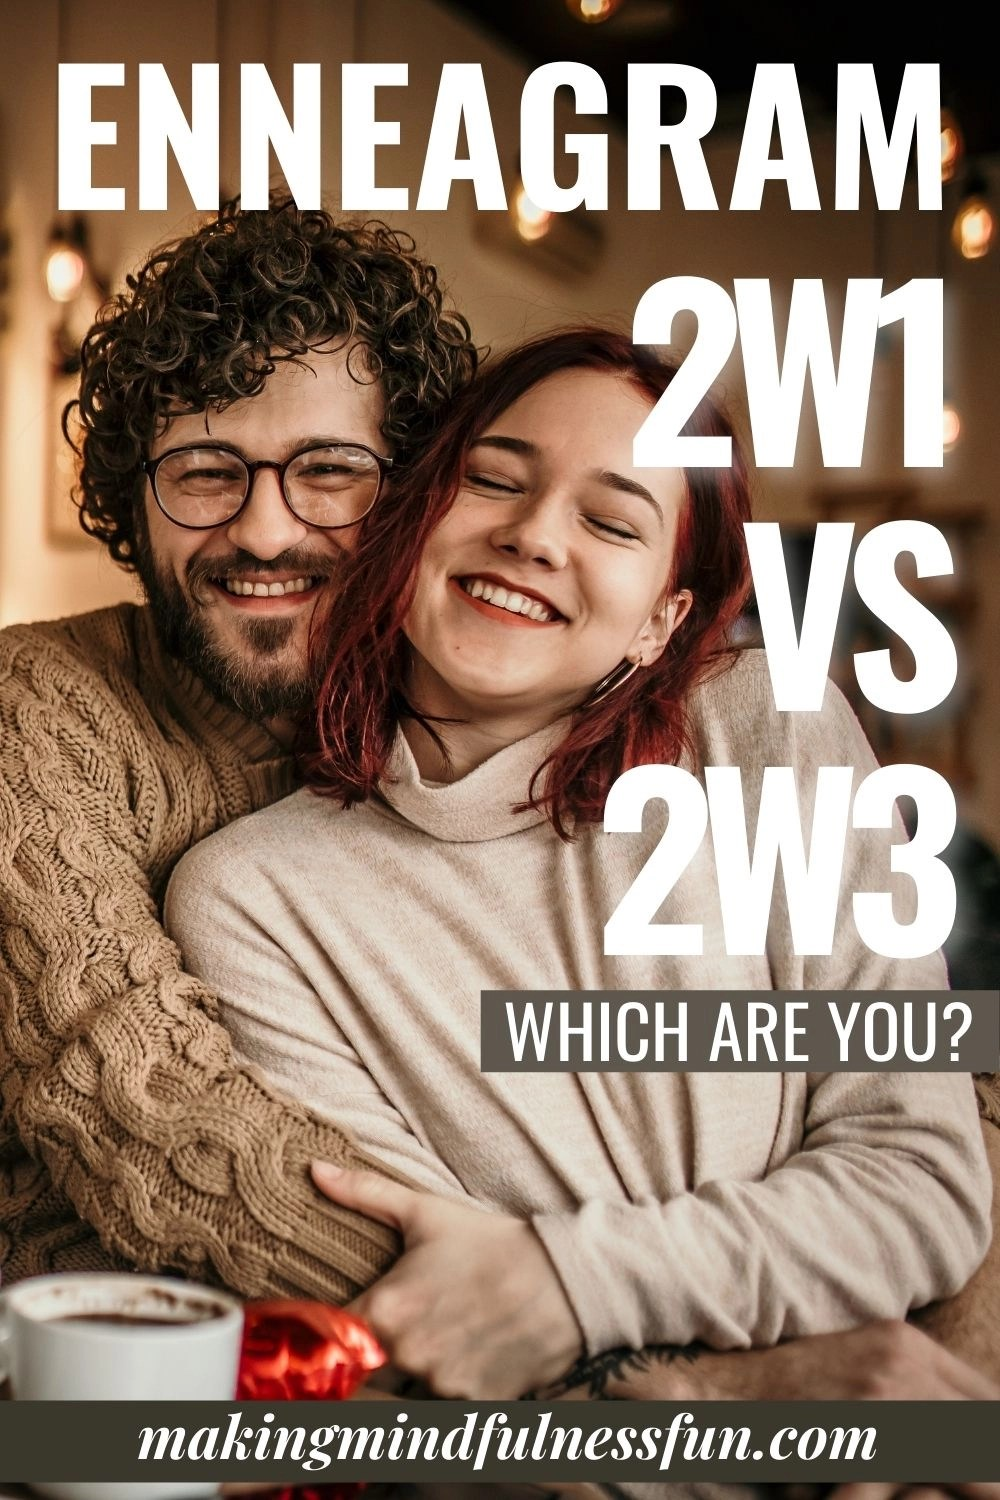 Enneagram 2w1 vs 2w3 Which Are You?